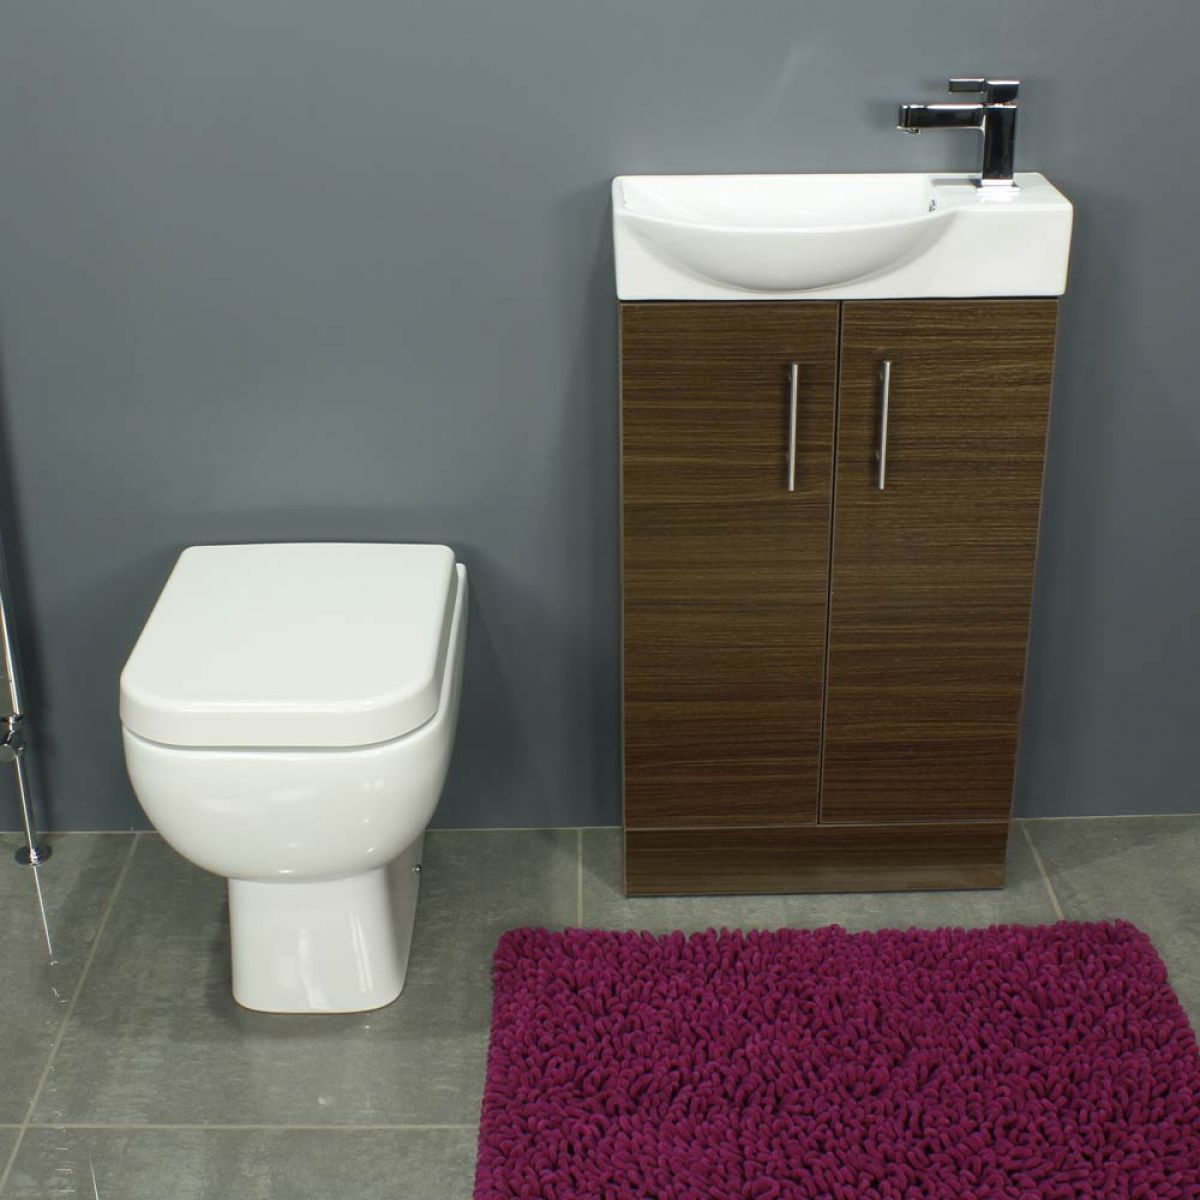 RAK Series 600 Back To Wall Toilet and 500 Series Walnut Mini Double Door Vanity Unit Front